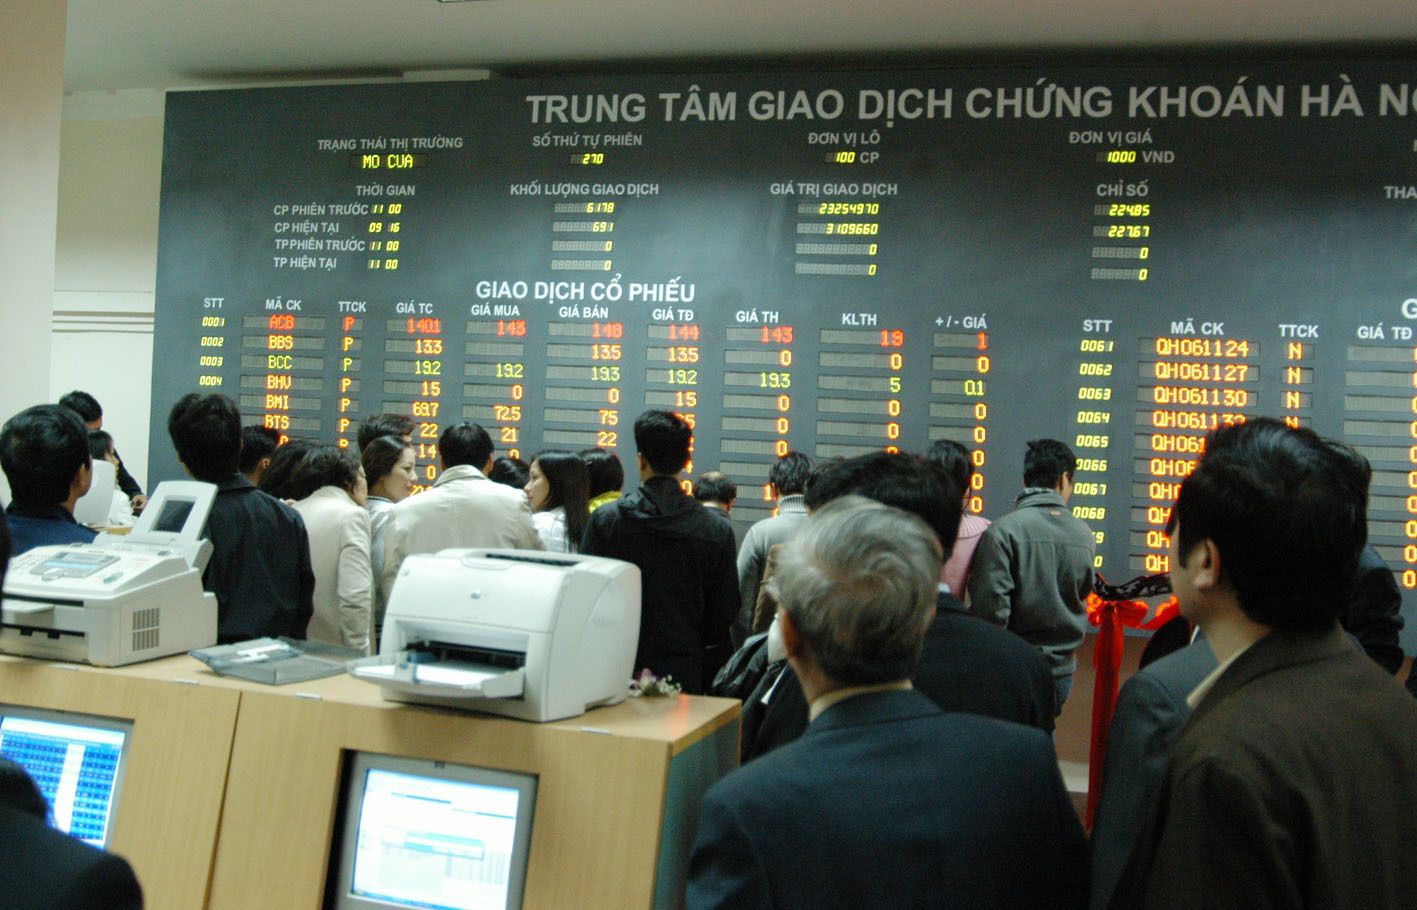 Finance ministry to monitor suspicious securities transaction later this month